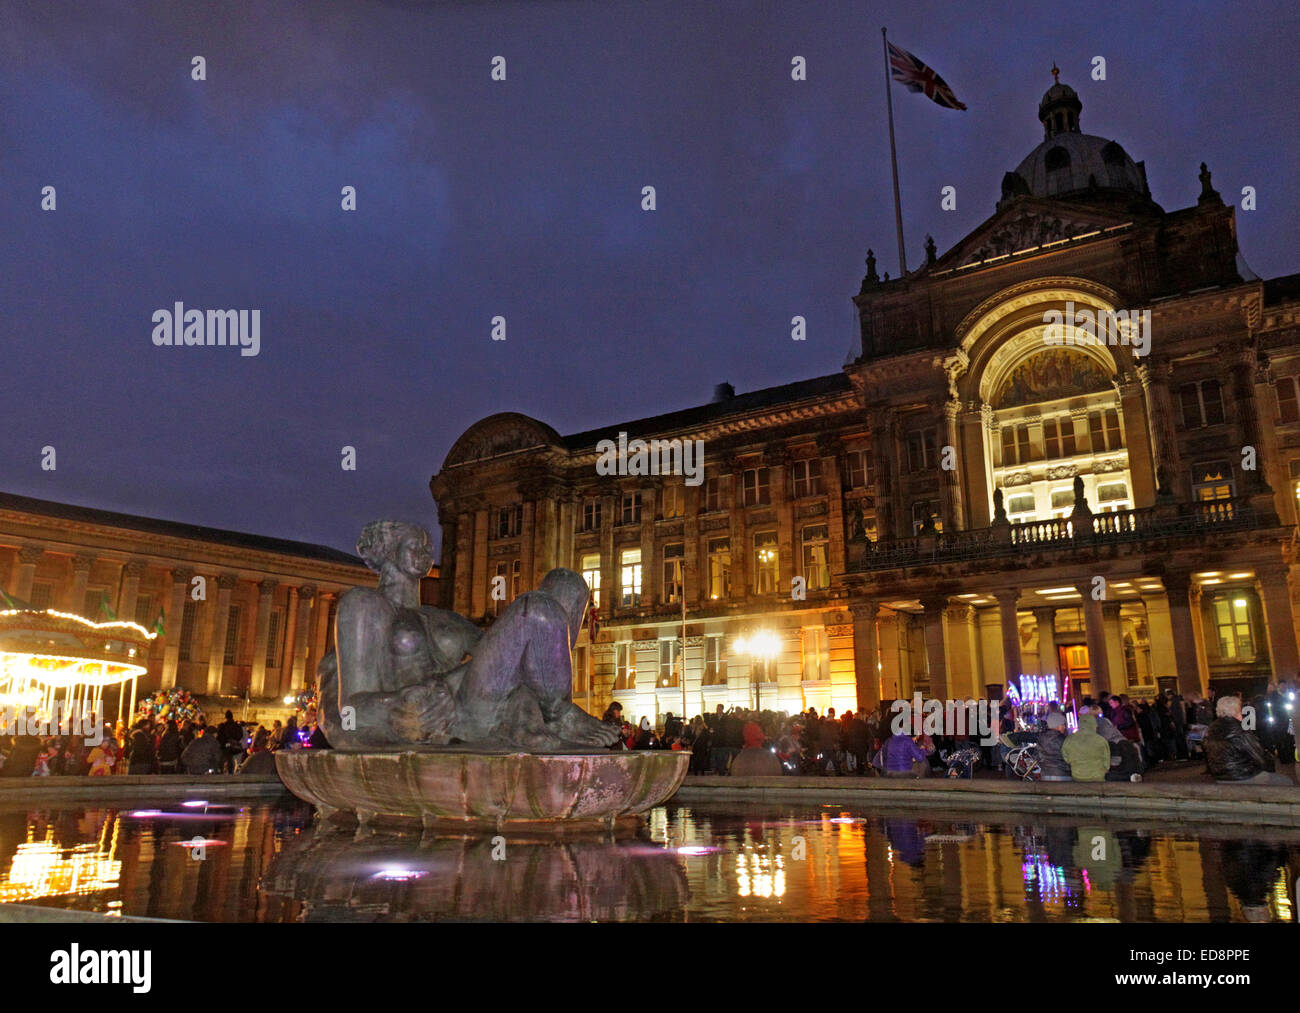 Birmingham Town Hall Council House,Victoria Square, Birmingham, England, UK, B3 3DQ, at dusk Stock Photo